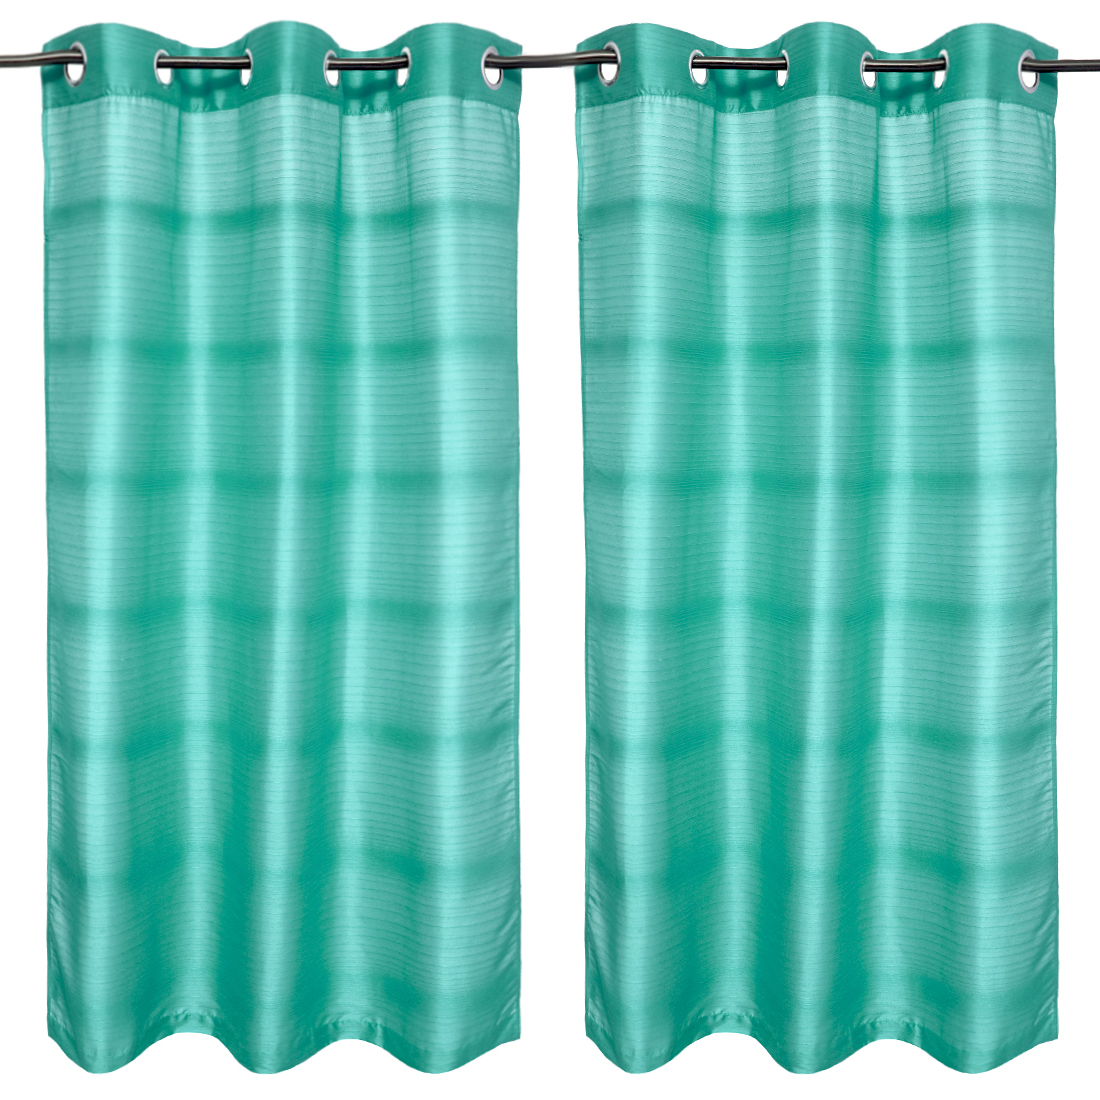 Fiesta Solid set of 2 Polyester Window Curtains in Turquoise Colour by Living Essence